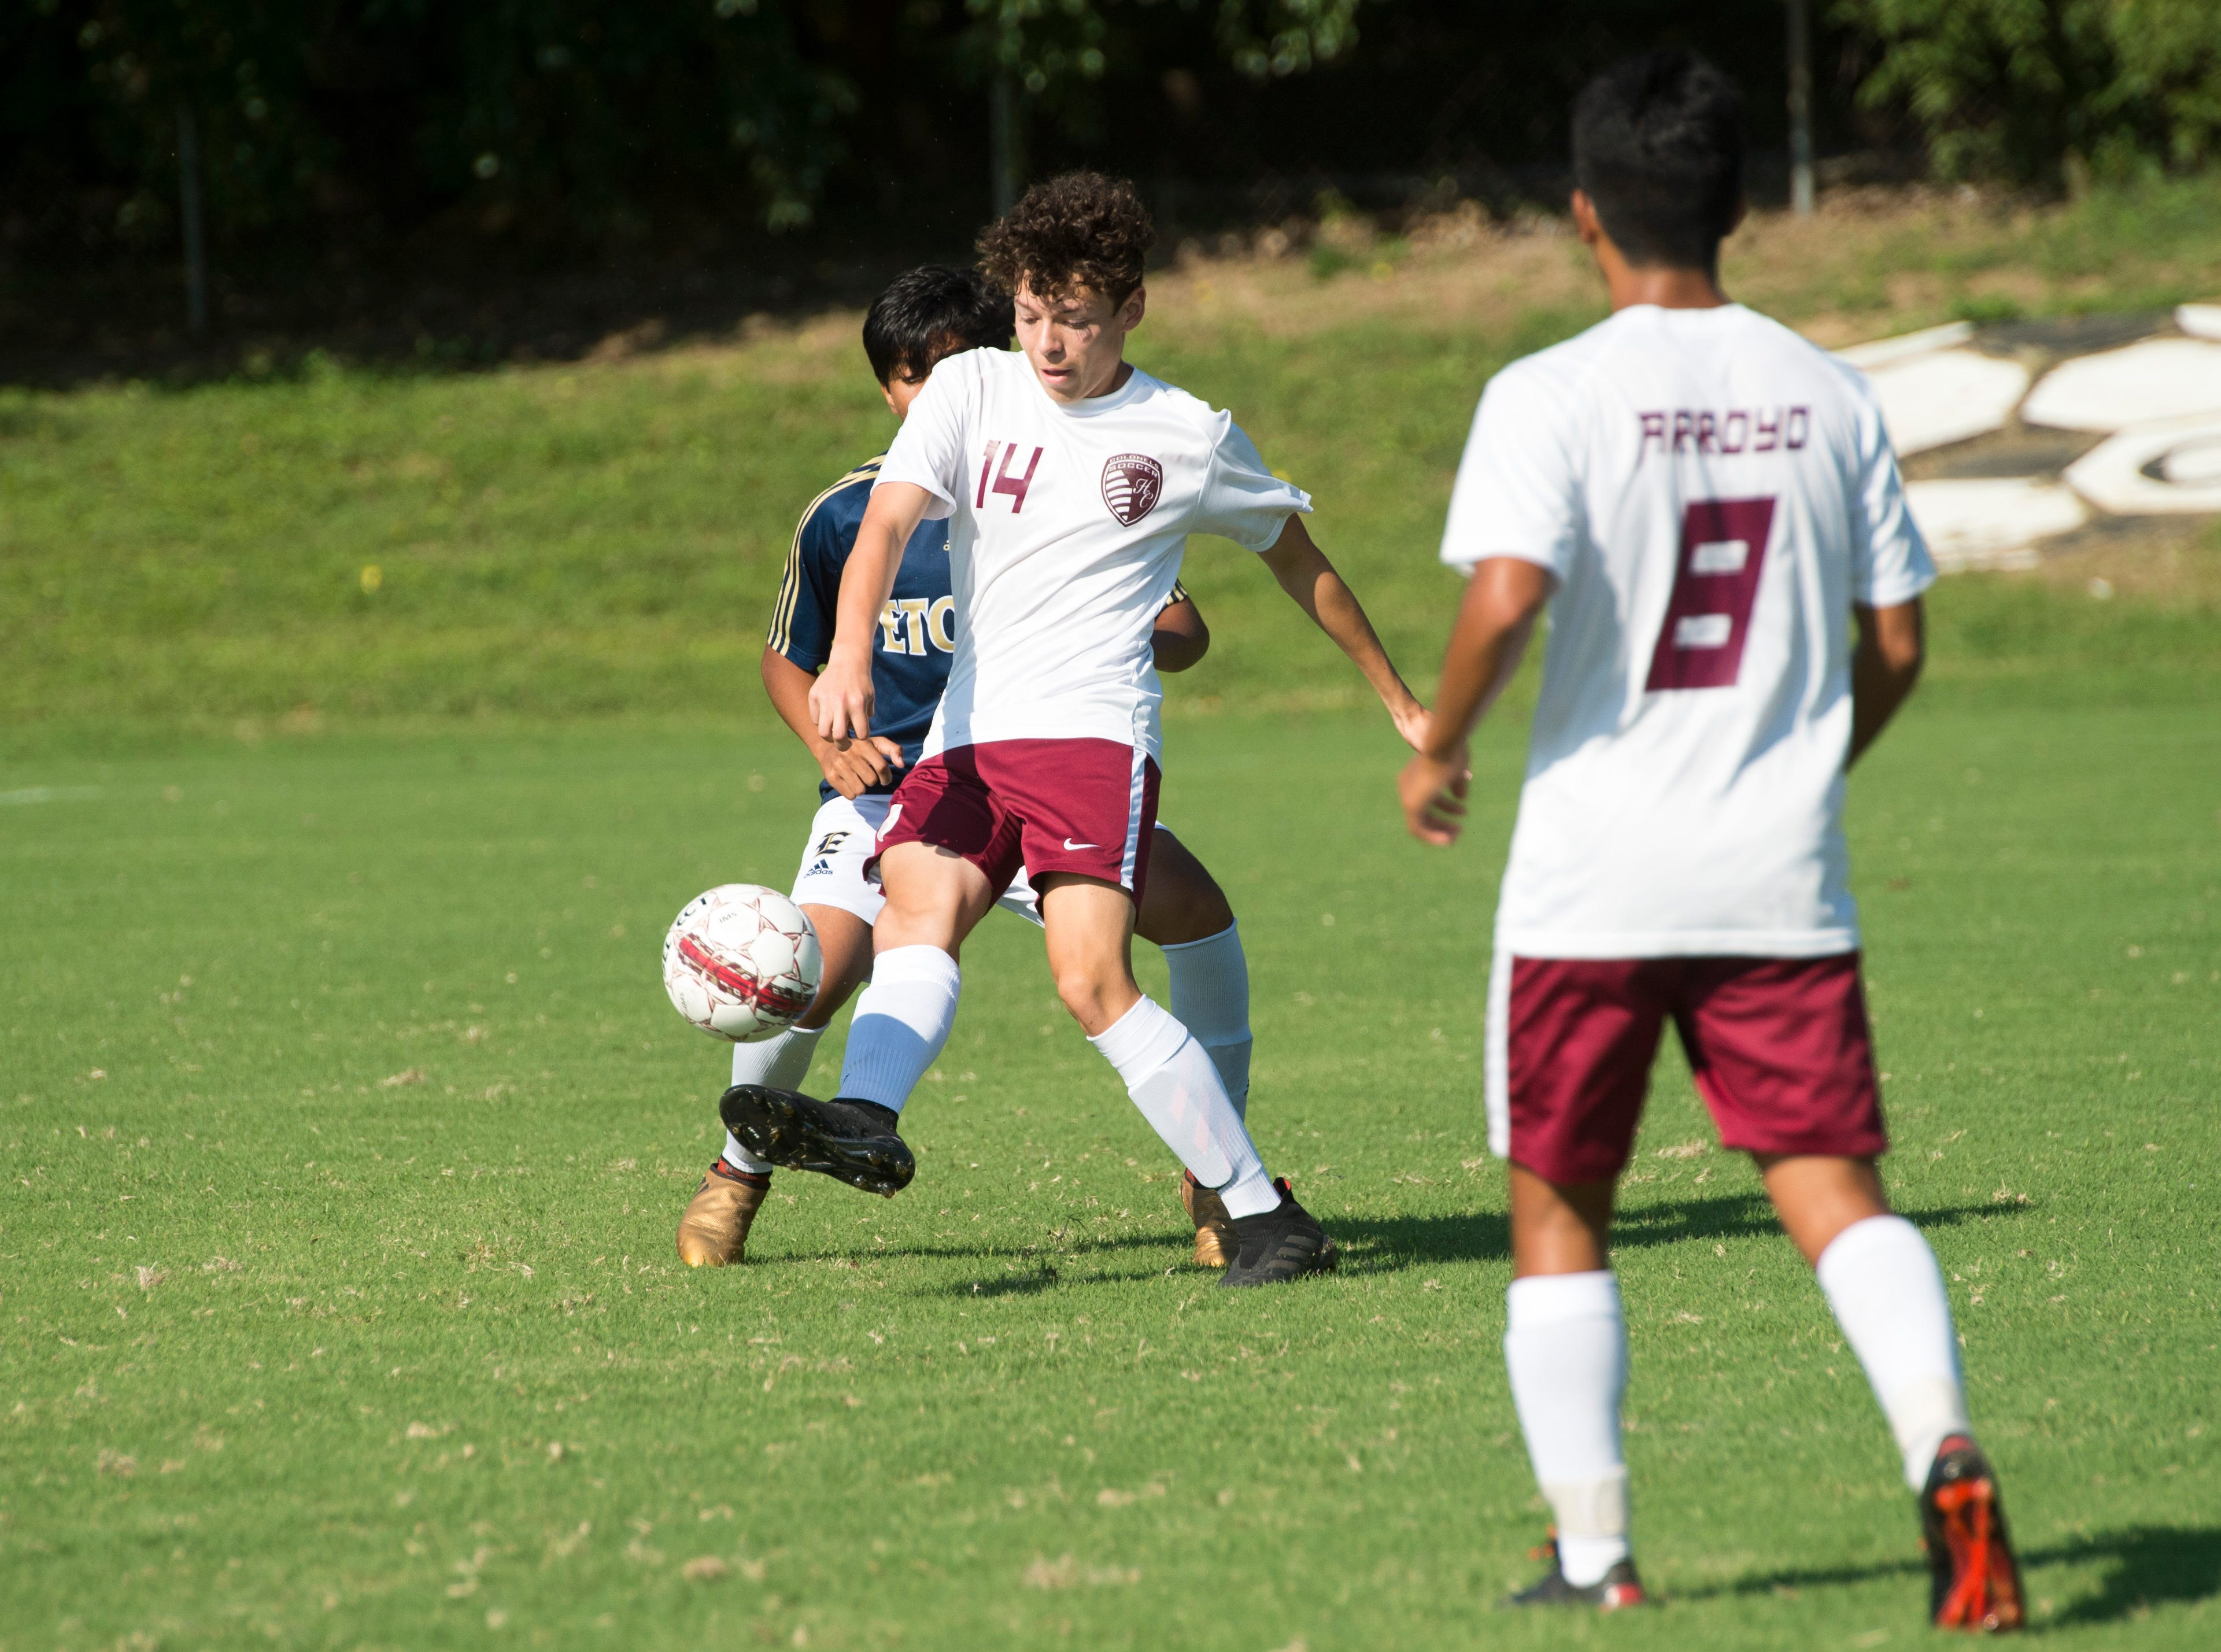 Henderson County's Jordan Toribio (14) kicks the ball downfield during the first half against the Elizabethtown Panthers at Colonel Field in Henderson, Ky., Saturday, Sept. 15, 2018.